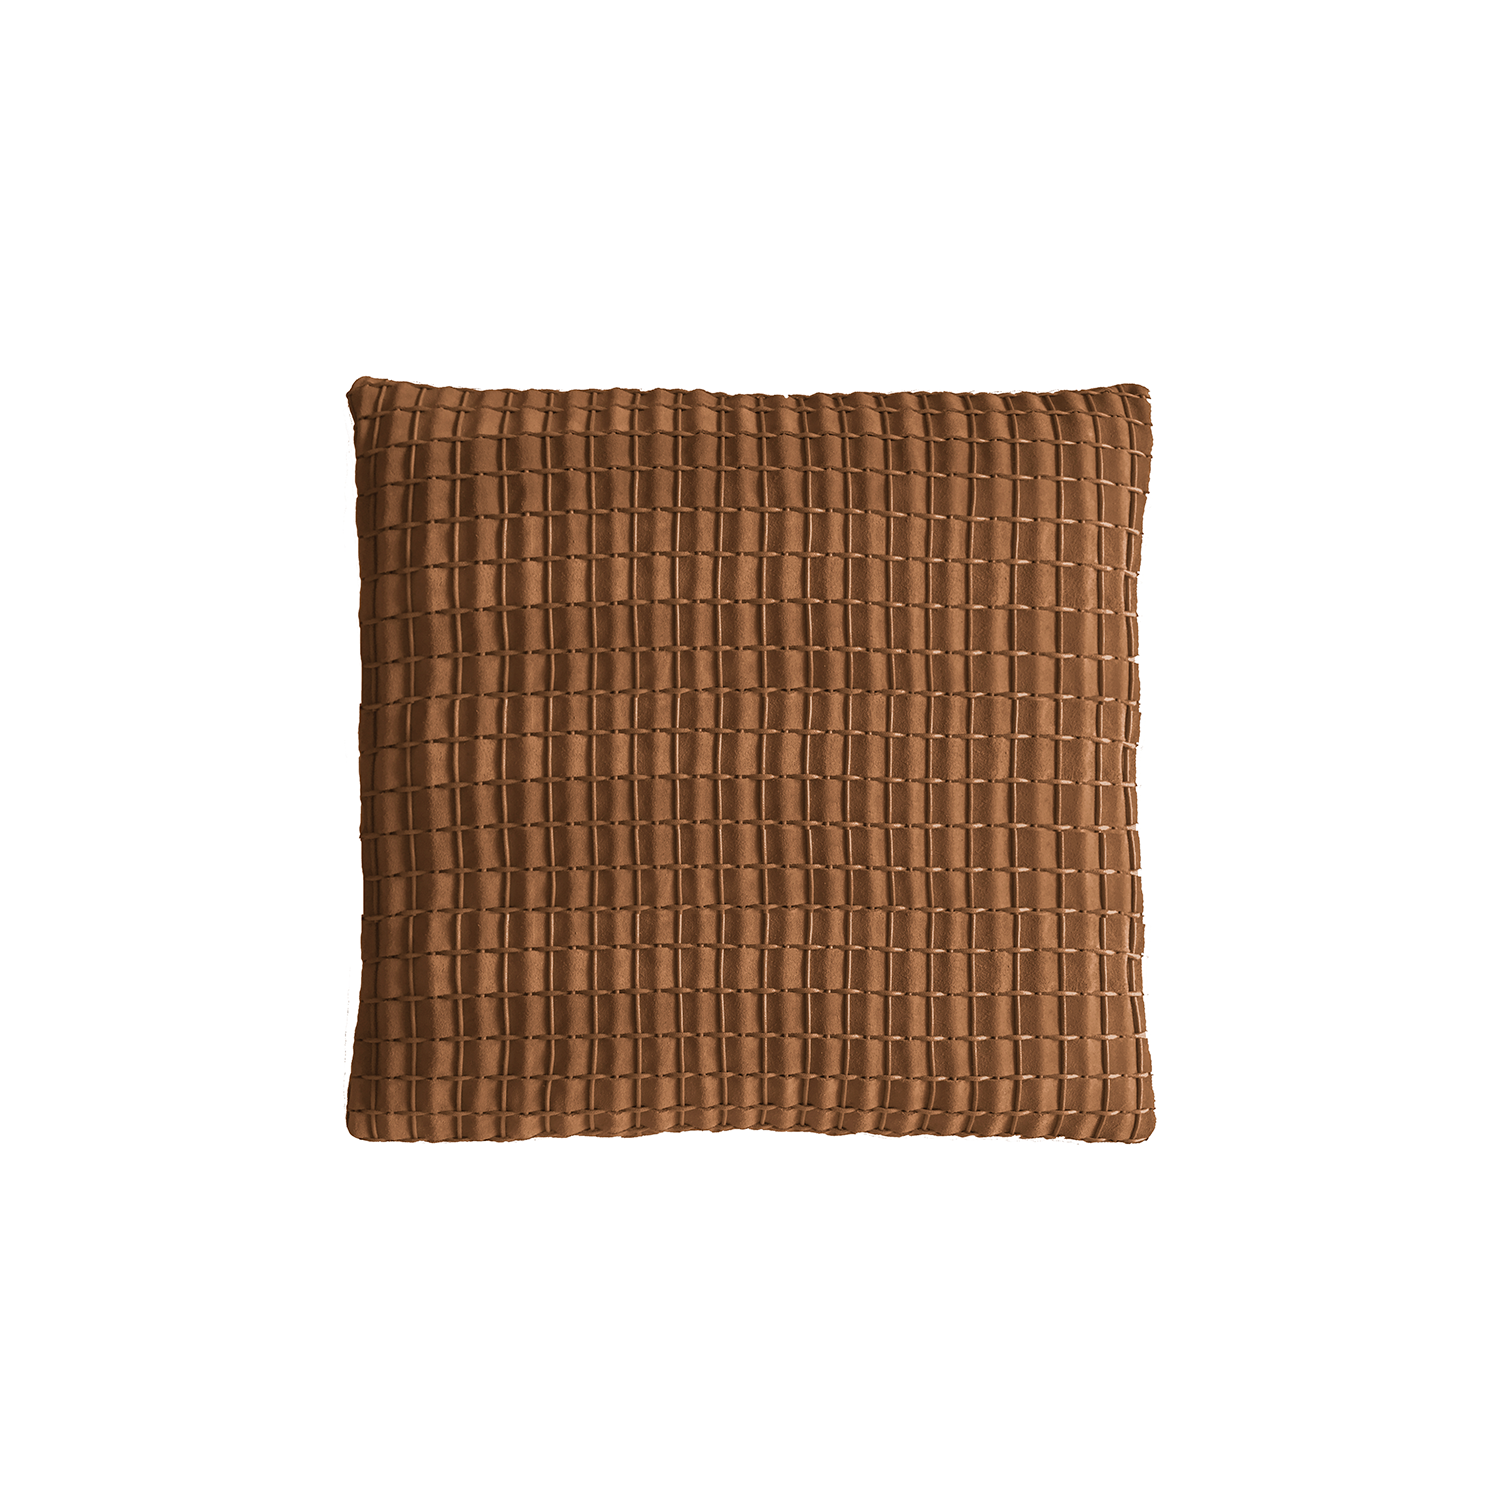 Cordao Woven Leather Cushion Square - The Cordao Woven Leather Cushion is designed to complement an ambient with a natural and sophisticated feeling. This cushion style is available in pleated leather or pleated suede leather. Elisa Atheniense woven handmade leather cushions are specially manufactured in Brazil using an exclusive treated leather that brings the soft feel touch to every single piece.   The front panel is handwoven in leather and the back panel is 100% Pes, made in Brazil.  The inner cushion is available in Hollow Fibre and European Duck Feathers, made in the UK.  Please enquire for more information and see colour chart for reference.   | Matter of Stuff